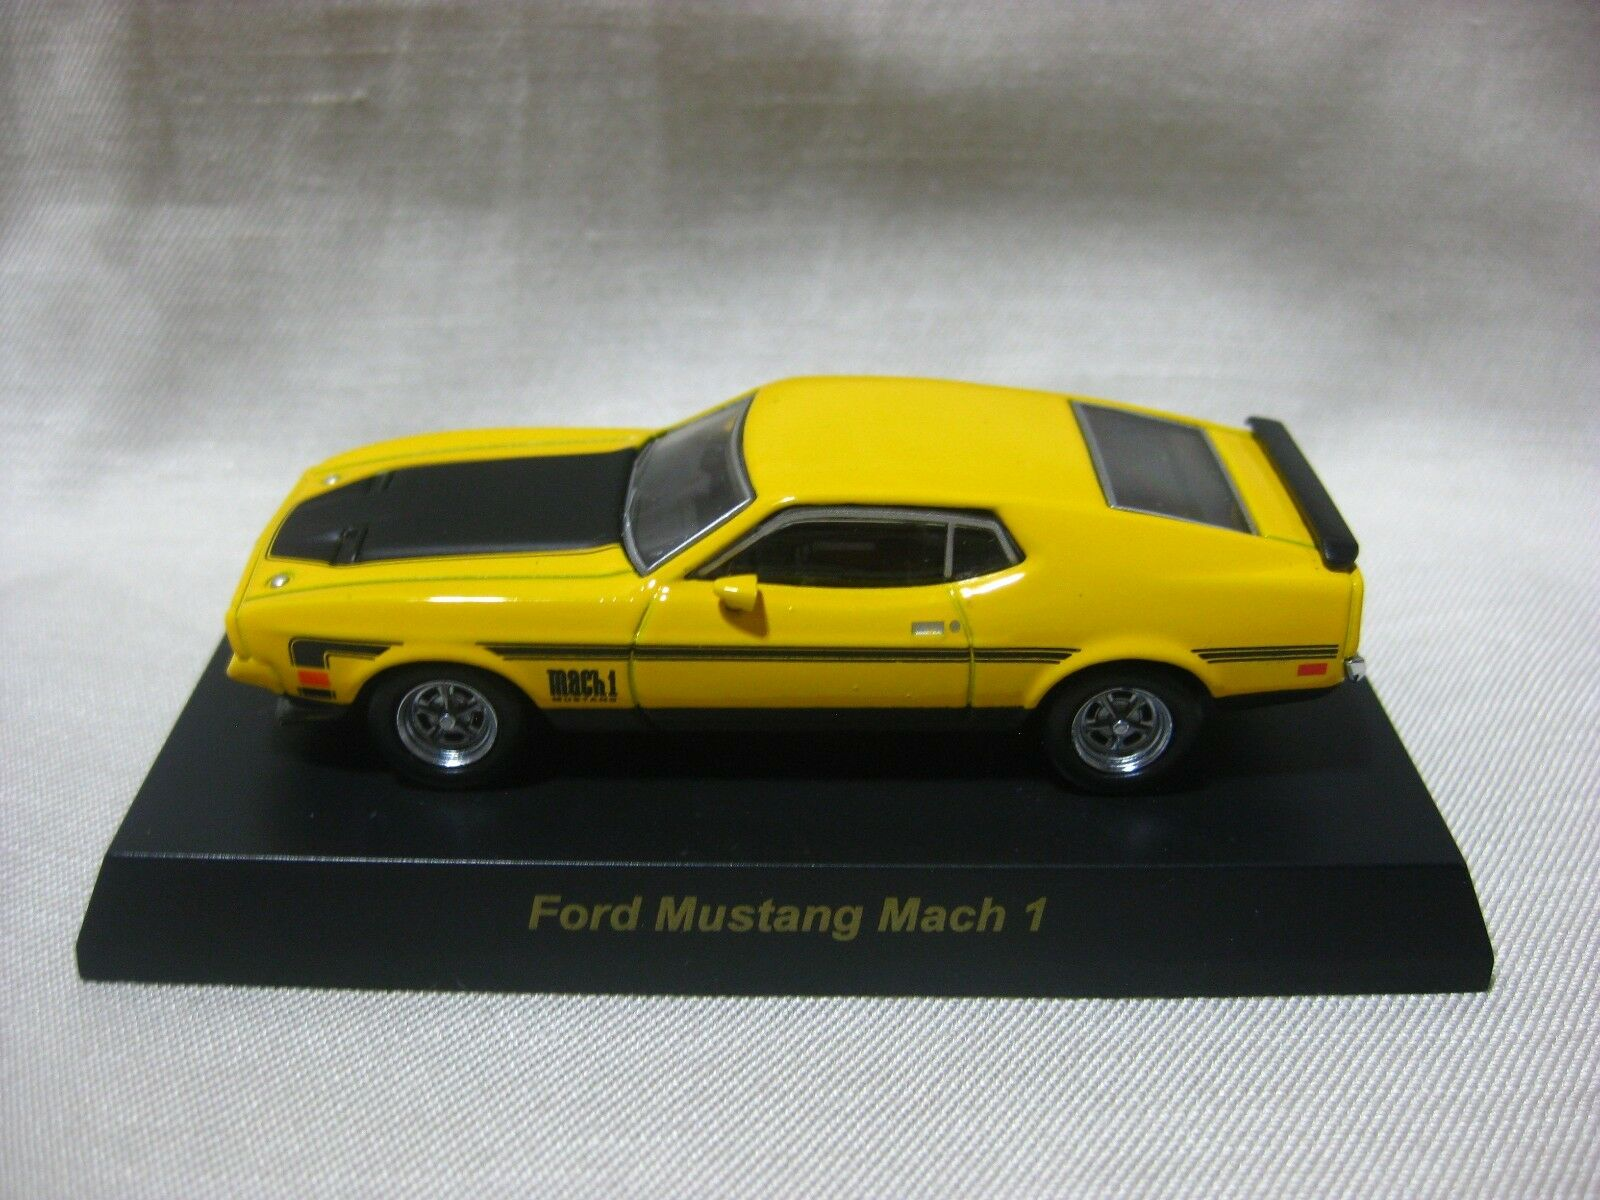 1 64 Kyosho Kyosho Kyosho Ford Mustang Mach 1 Yellow Diecast Model Car 14c5cc